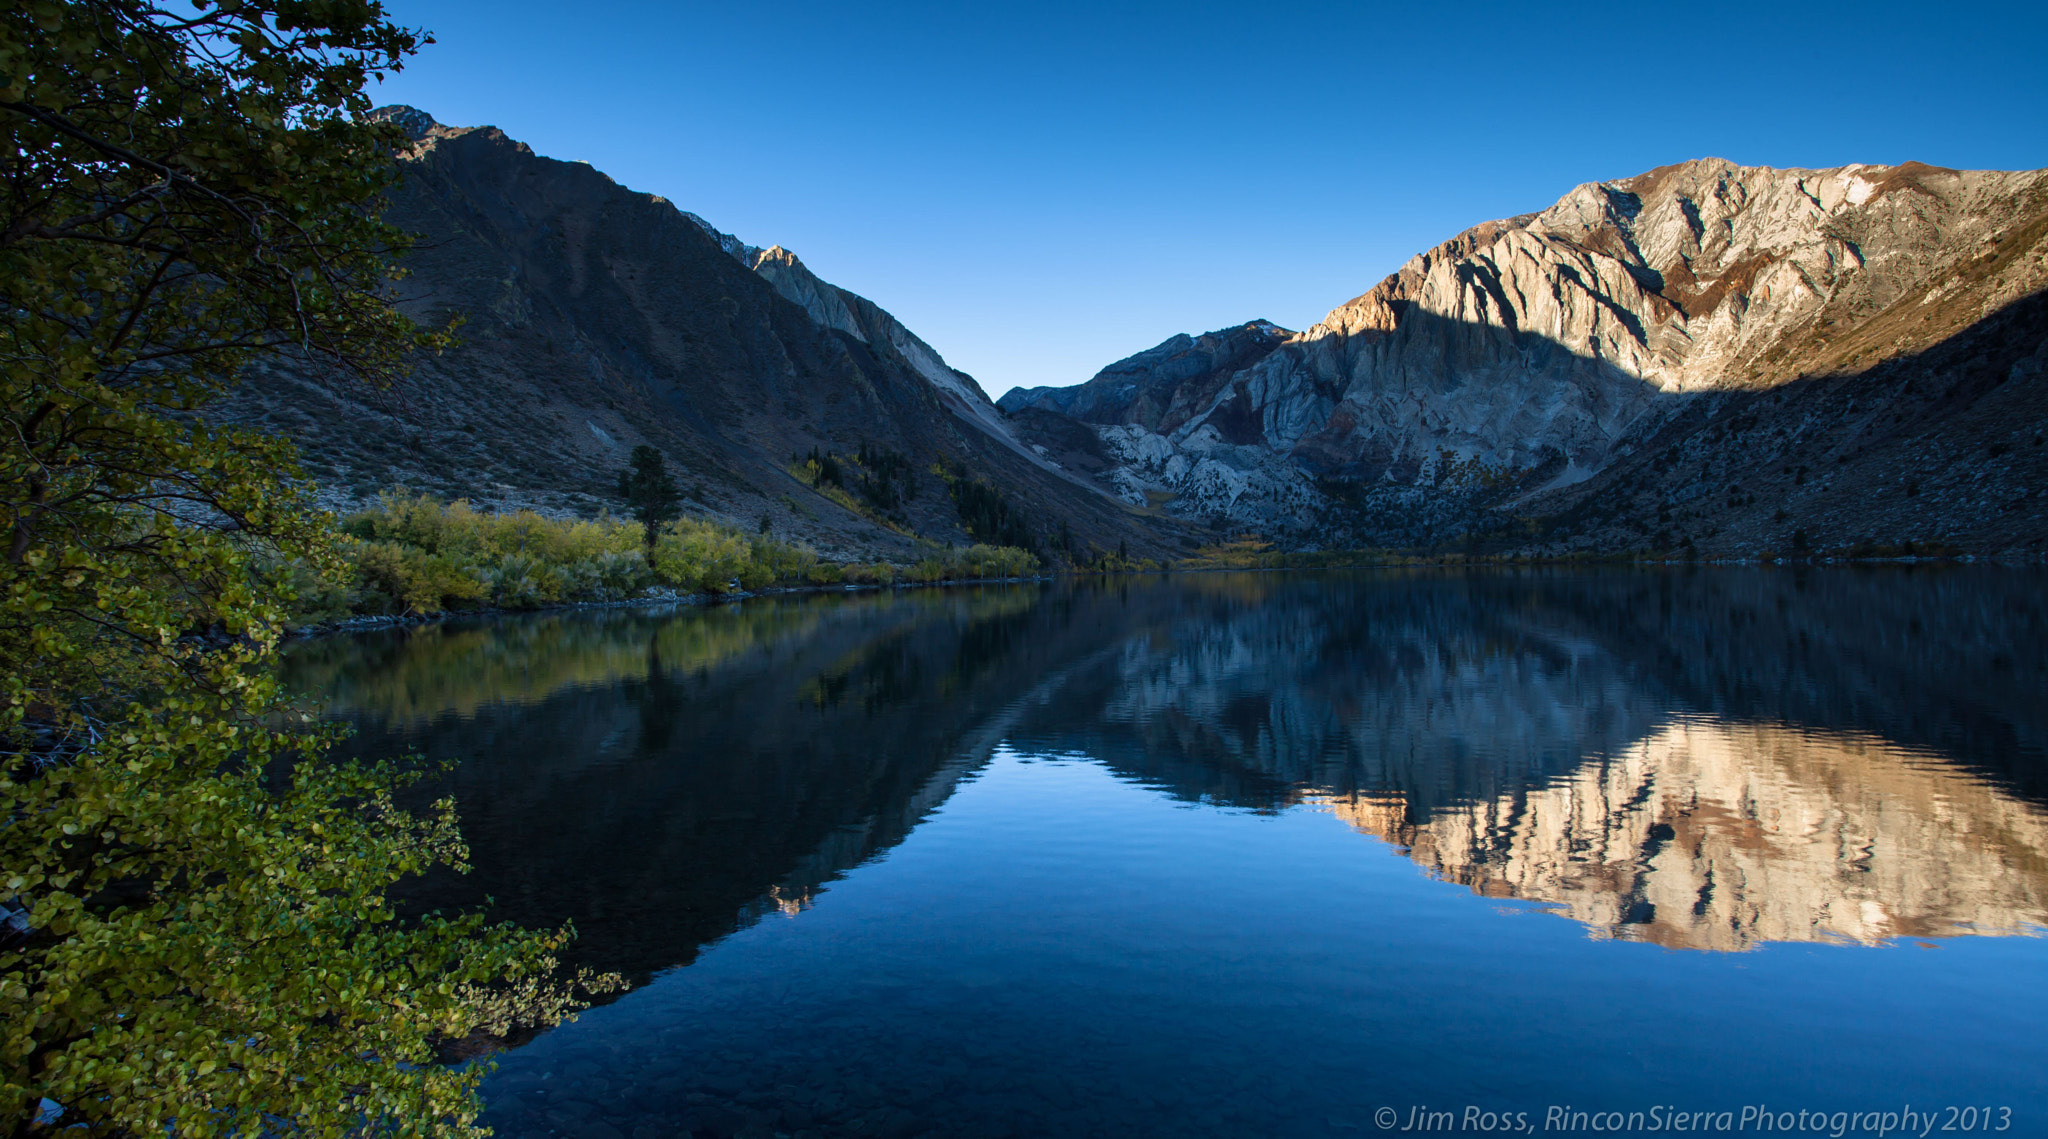 Photograph Convict Lake Sunrise in color!!! by Jim Ross on 500px